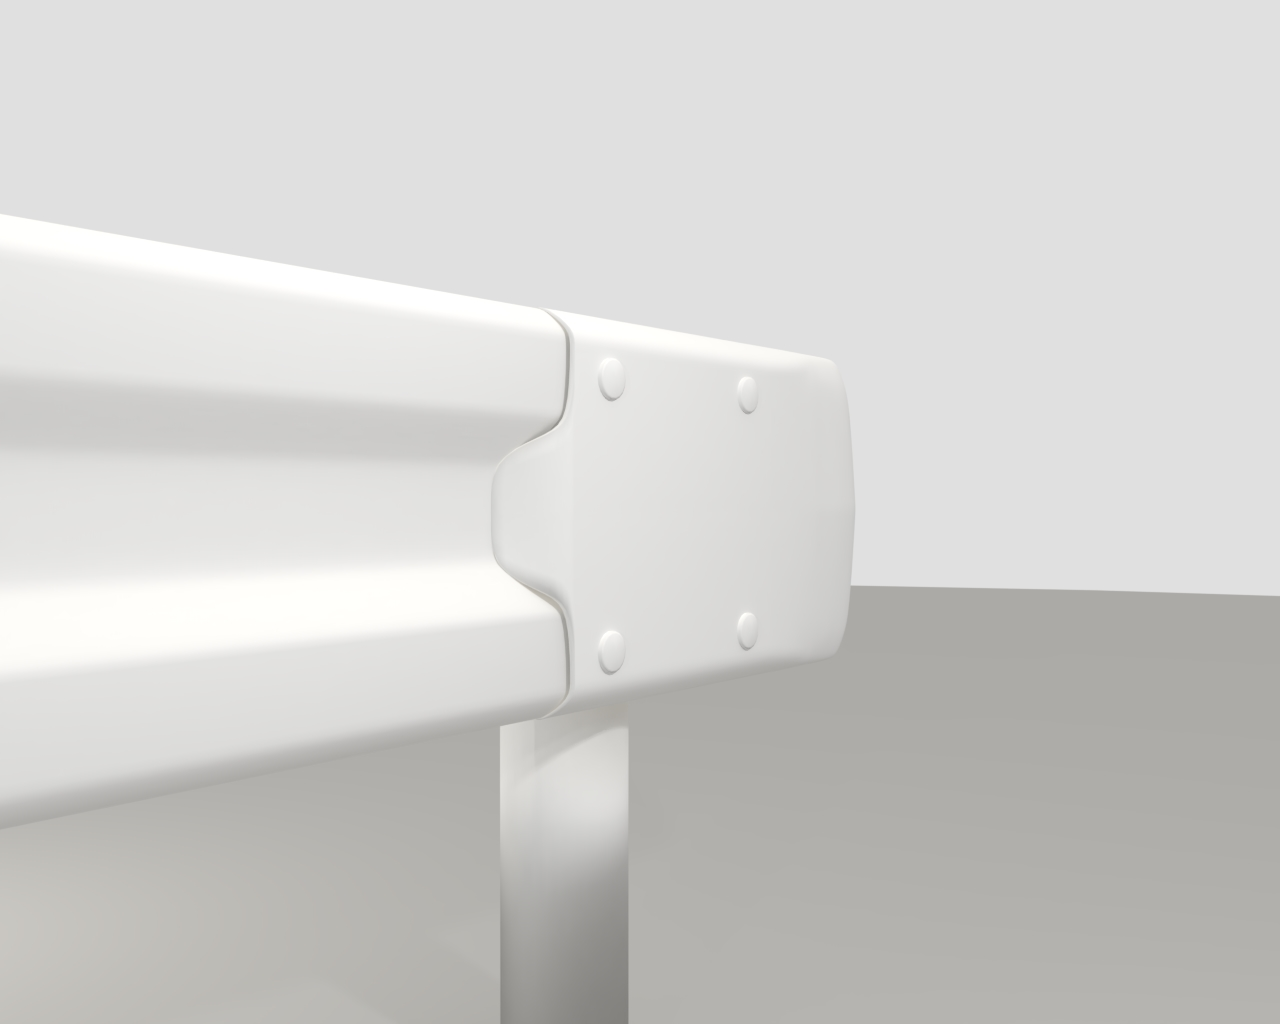 guardrail in japan 3d model fbx 282219